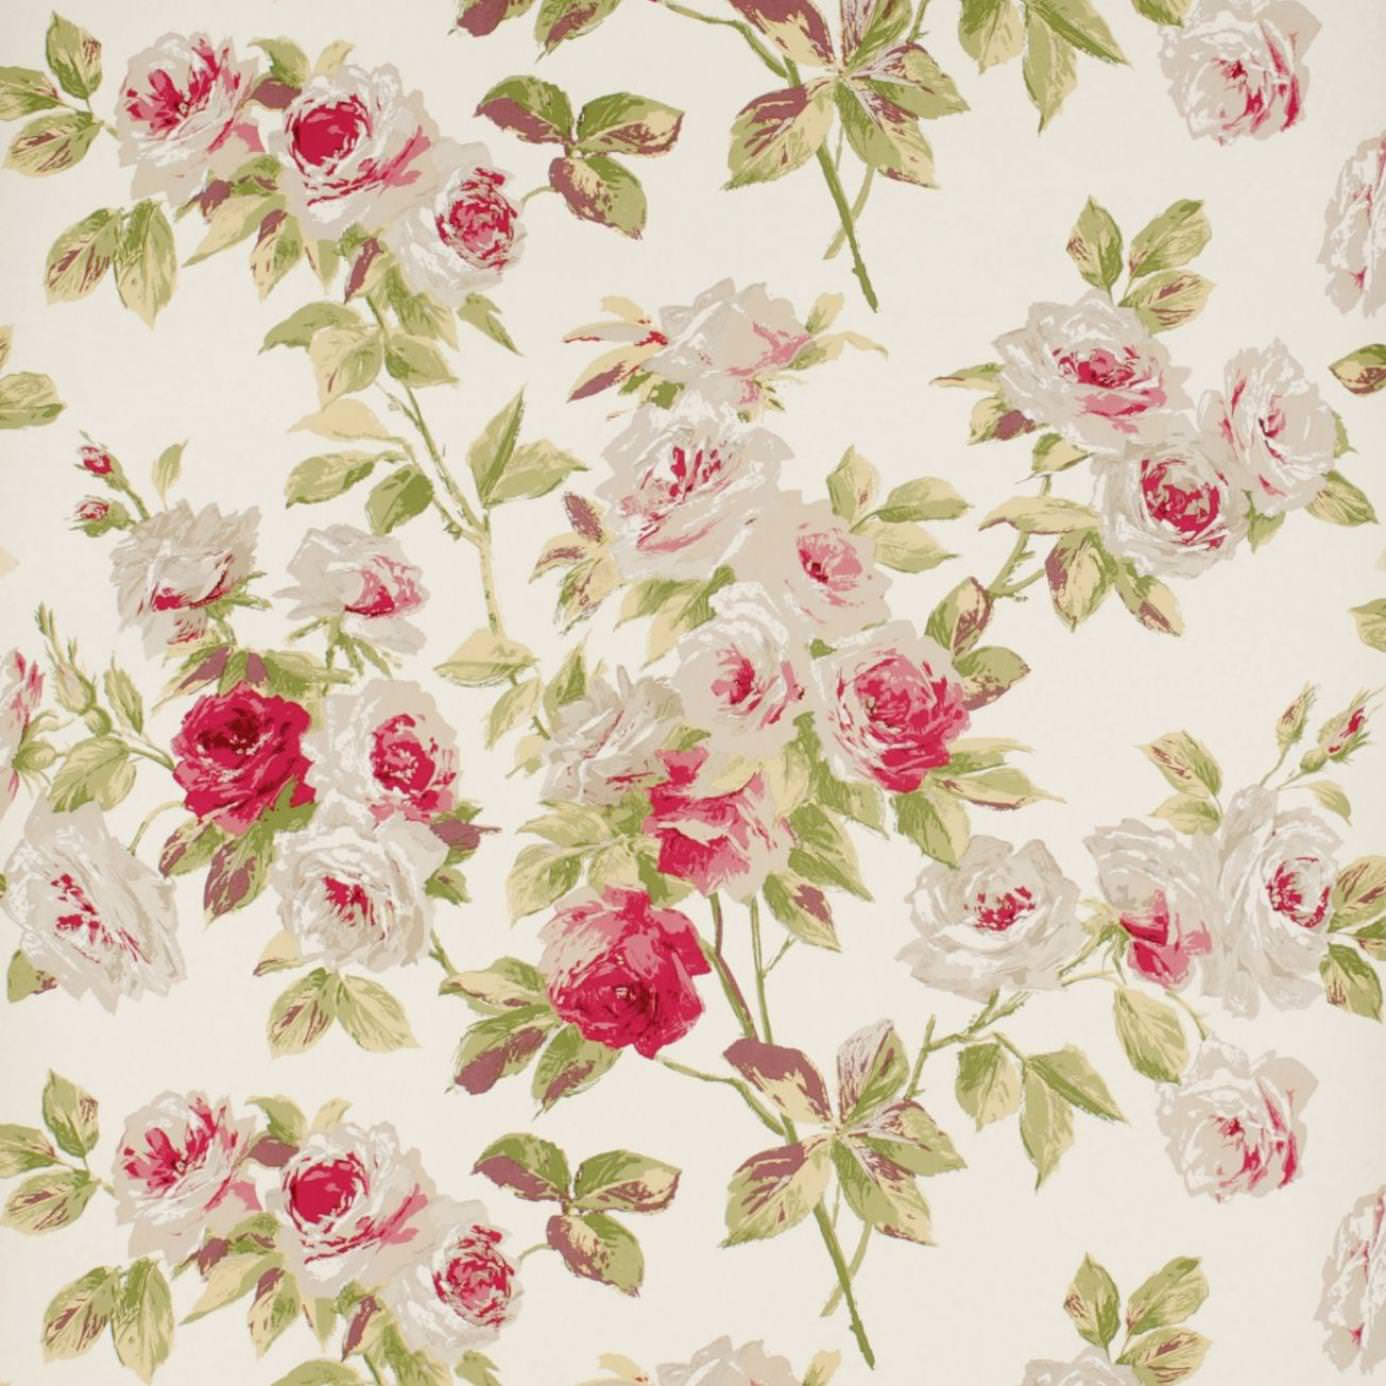 Free Download Download 15 Floral Vintage Wallpapers 1386x1386